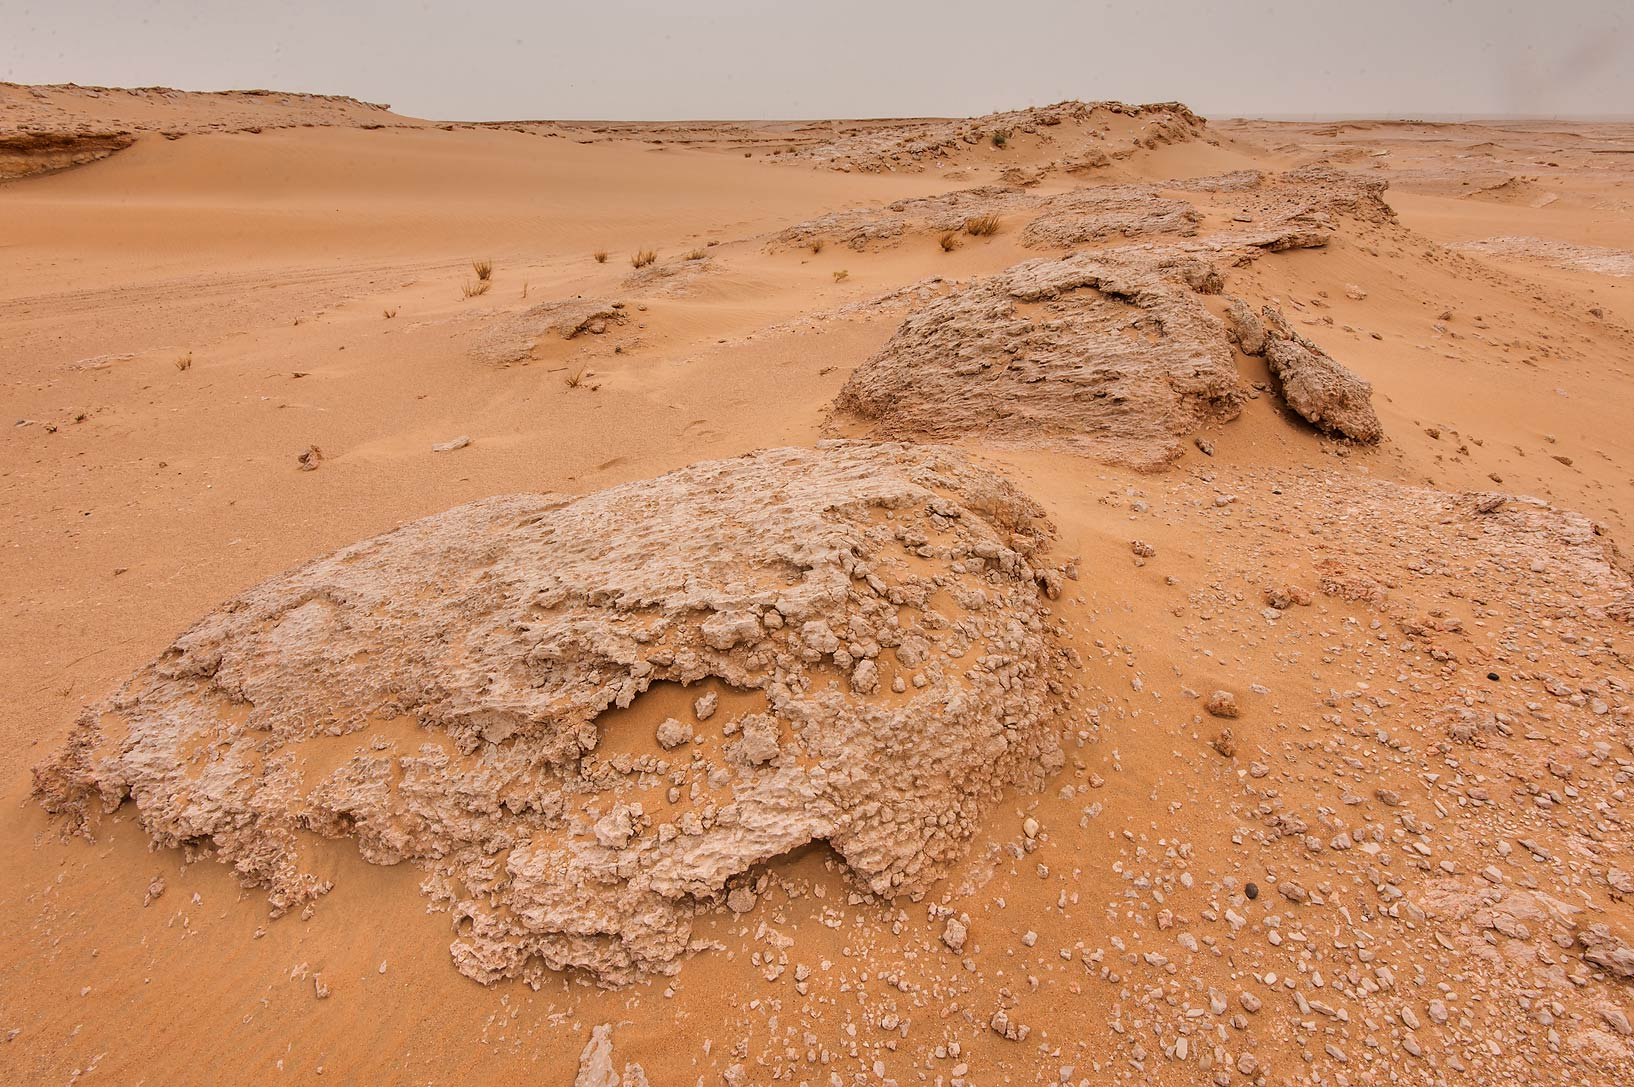 Fossilised intertidal stromatolites (microbial...near Salwa Rd. in southern Qatar